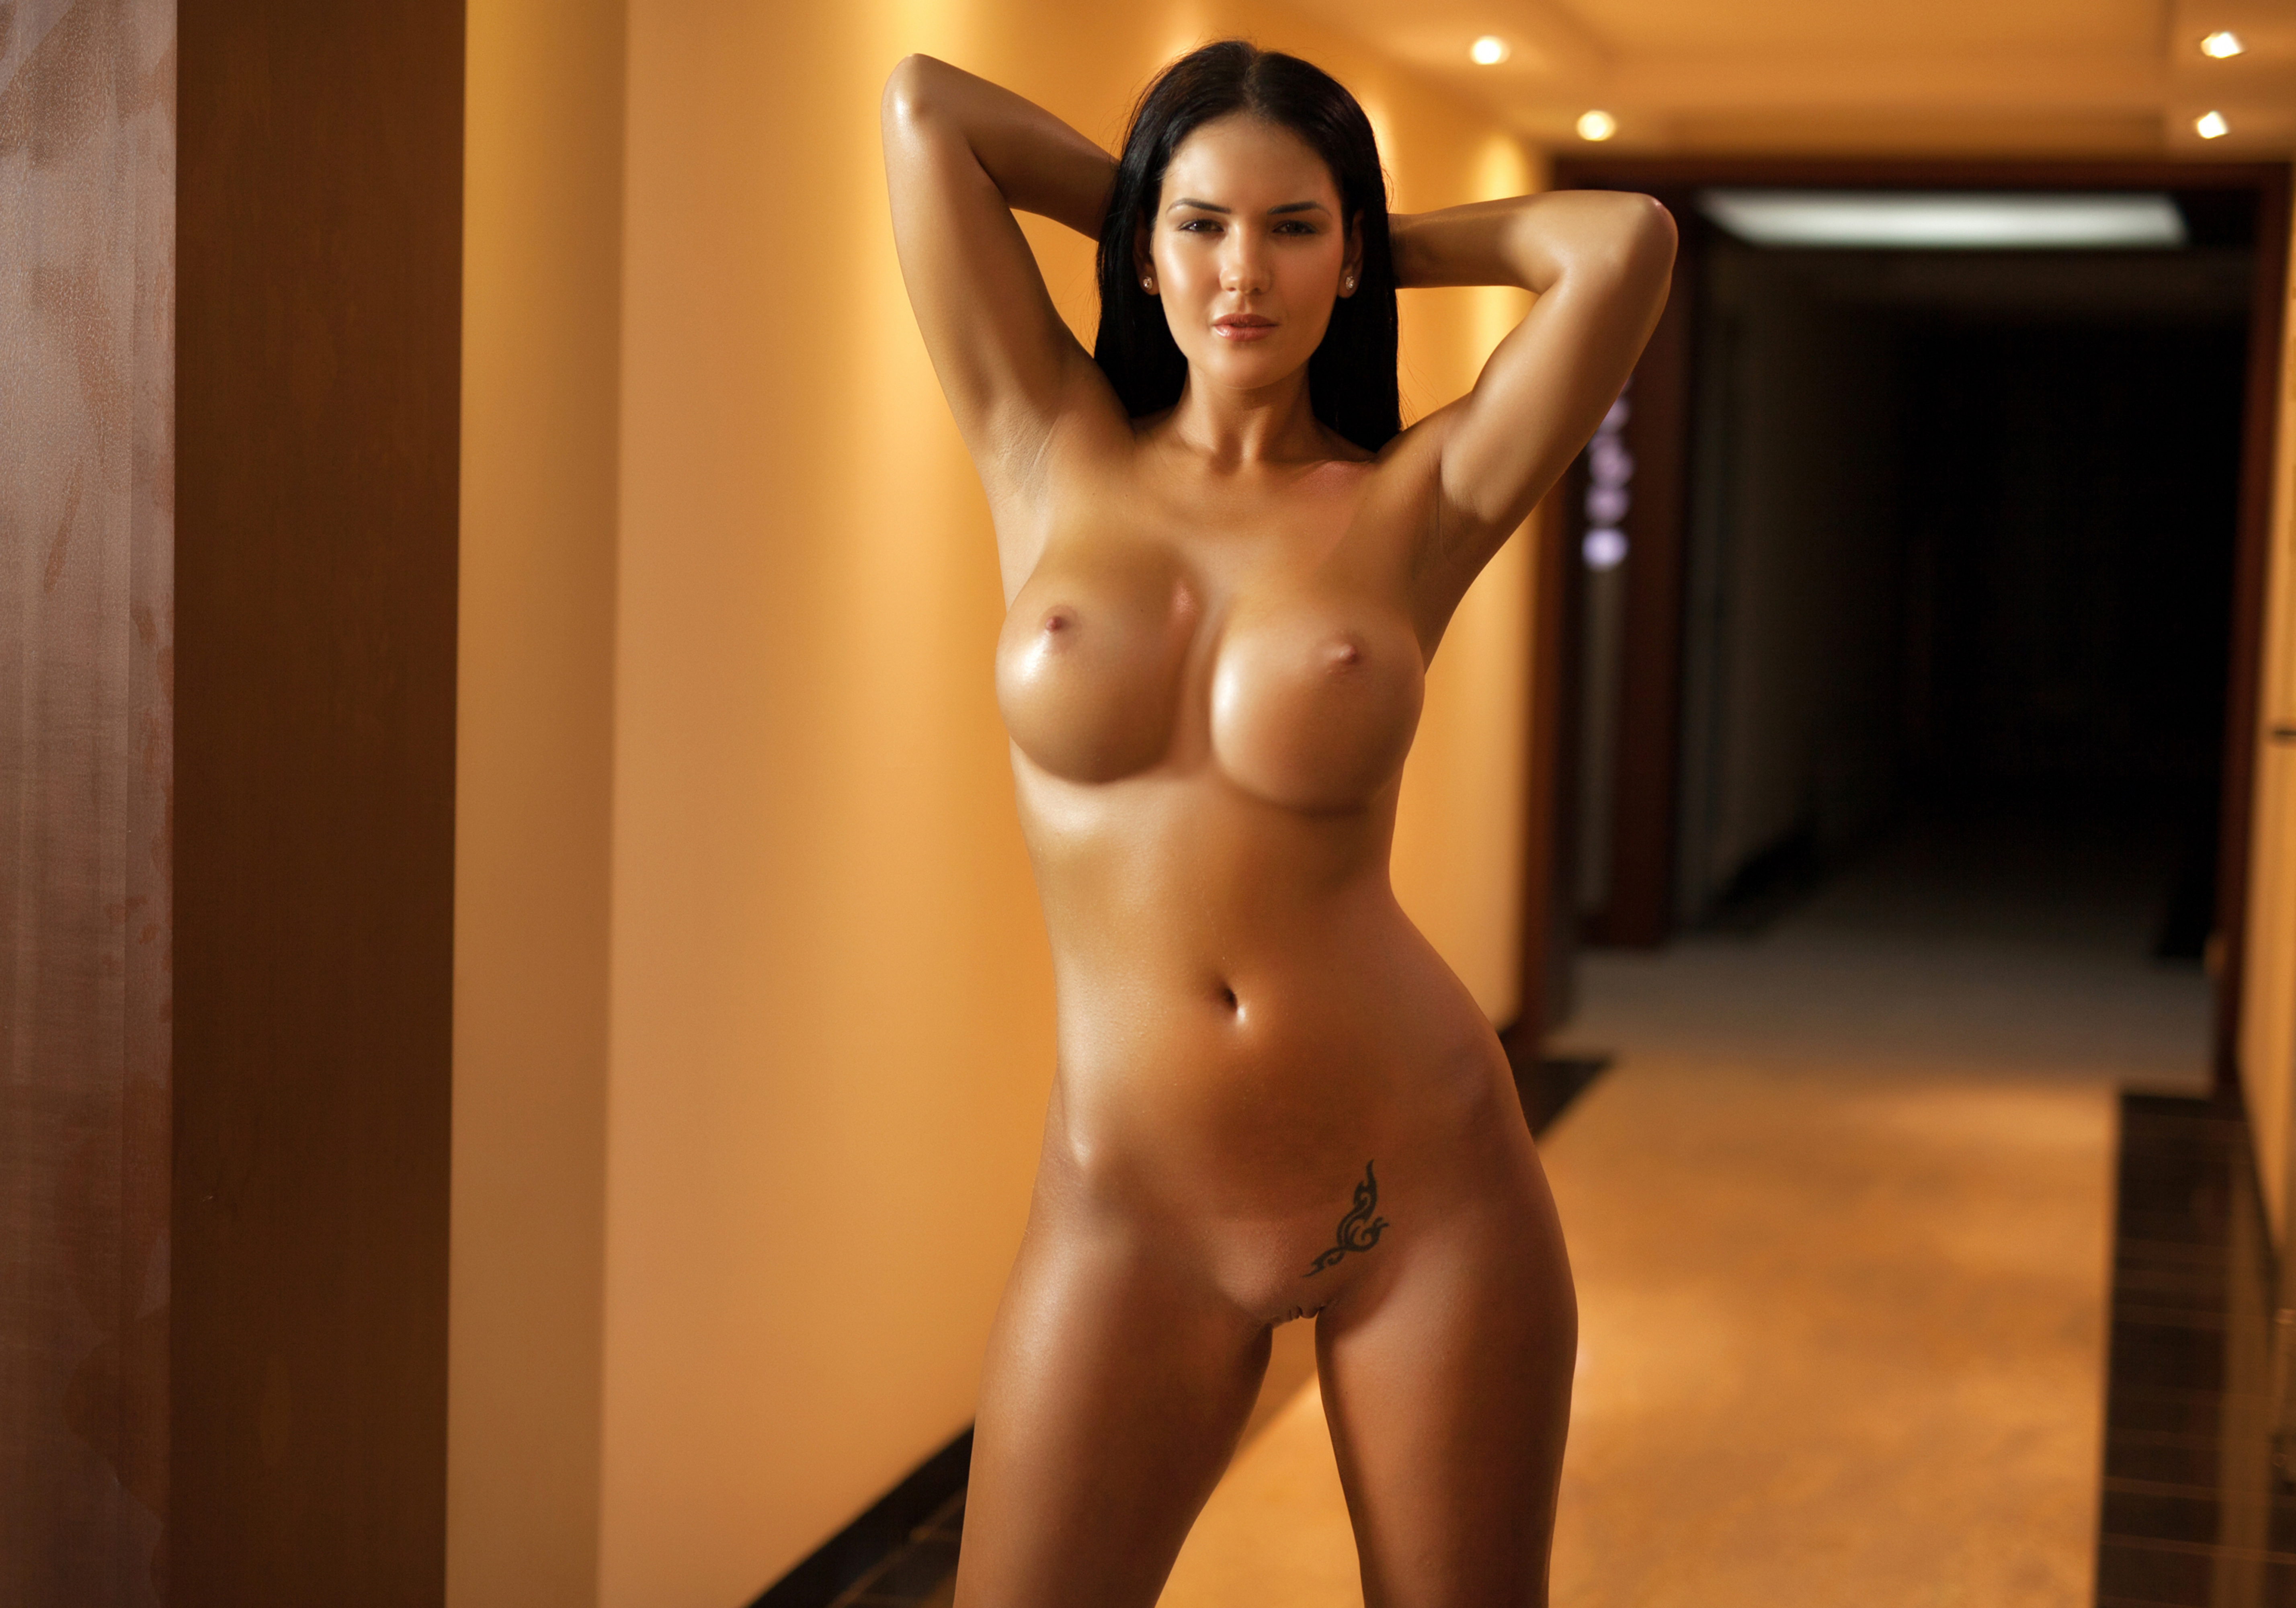 naked-bitches-with-perfect-bodies-naked-videos-in-public